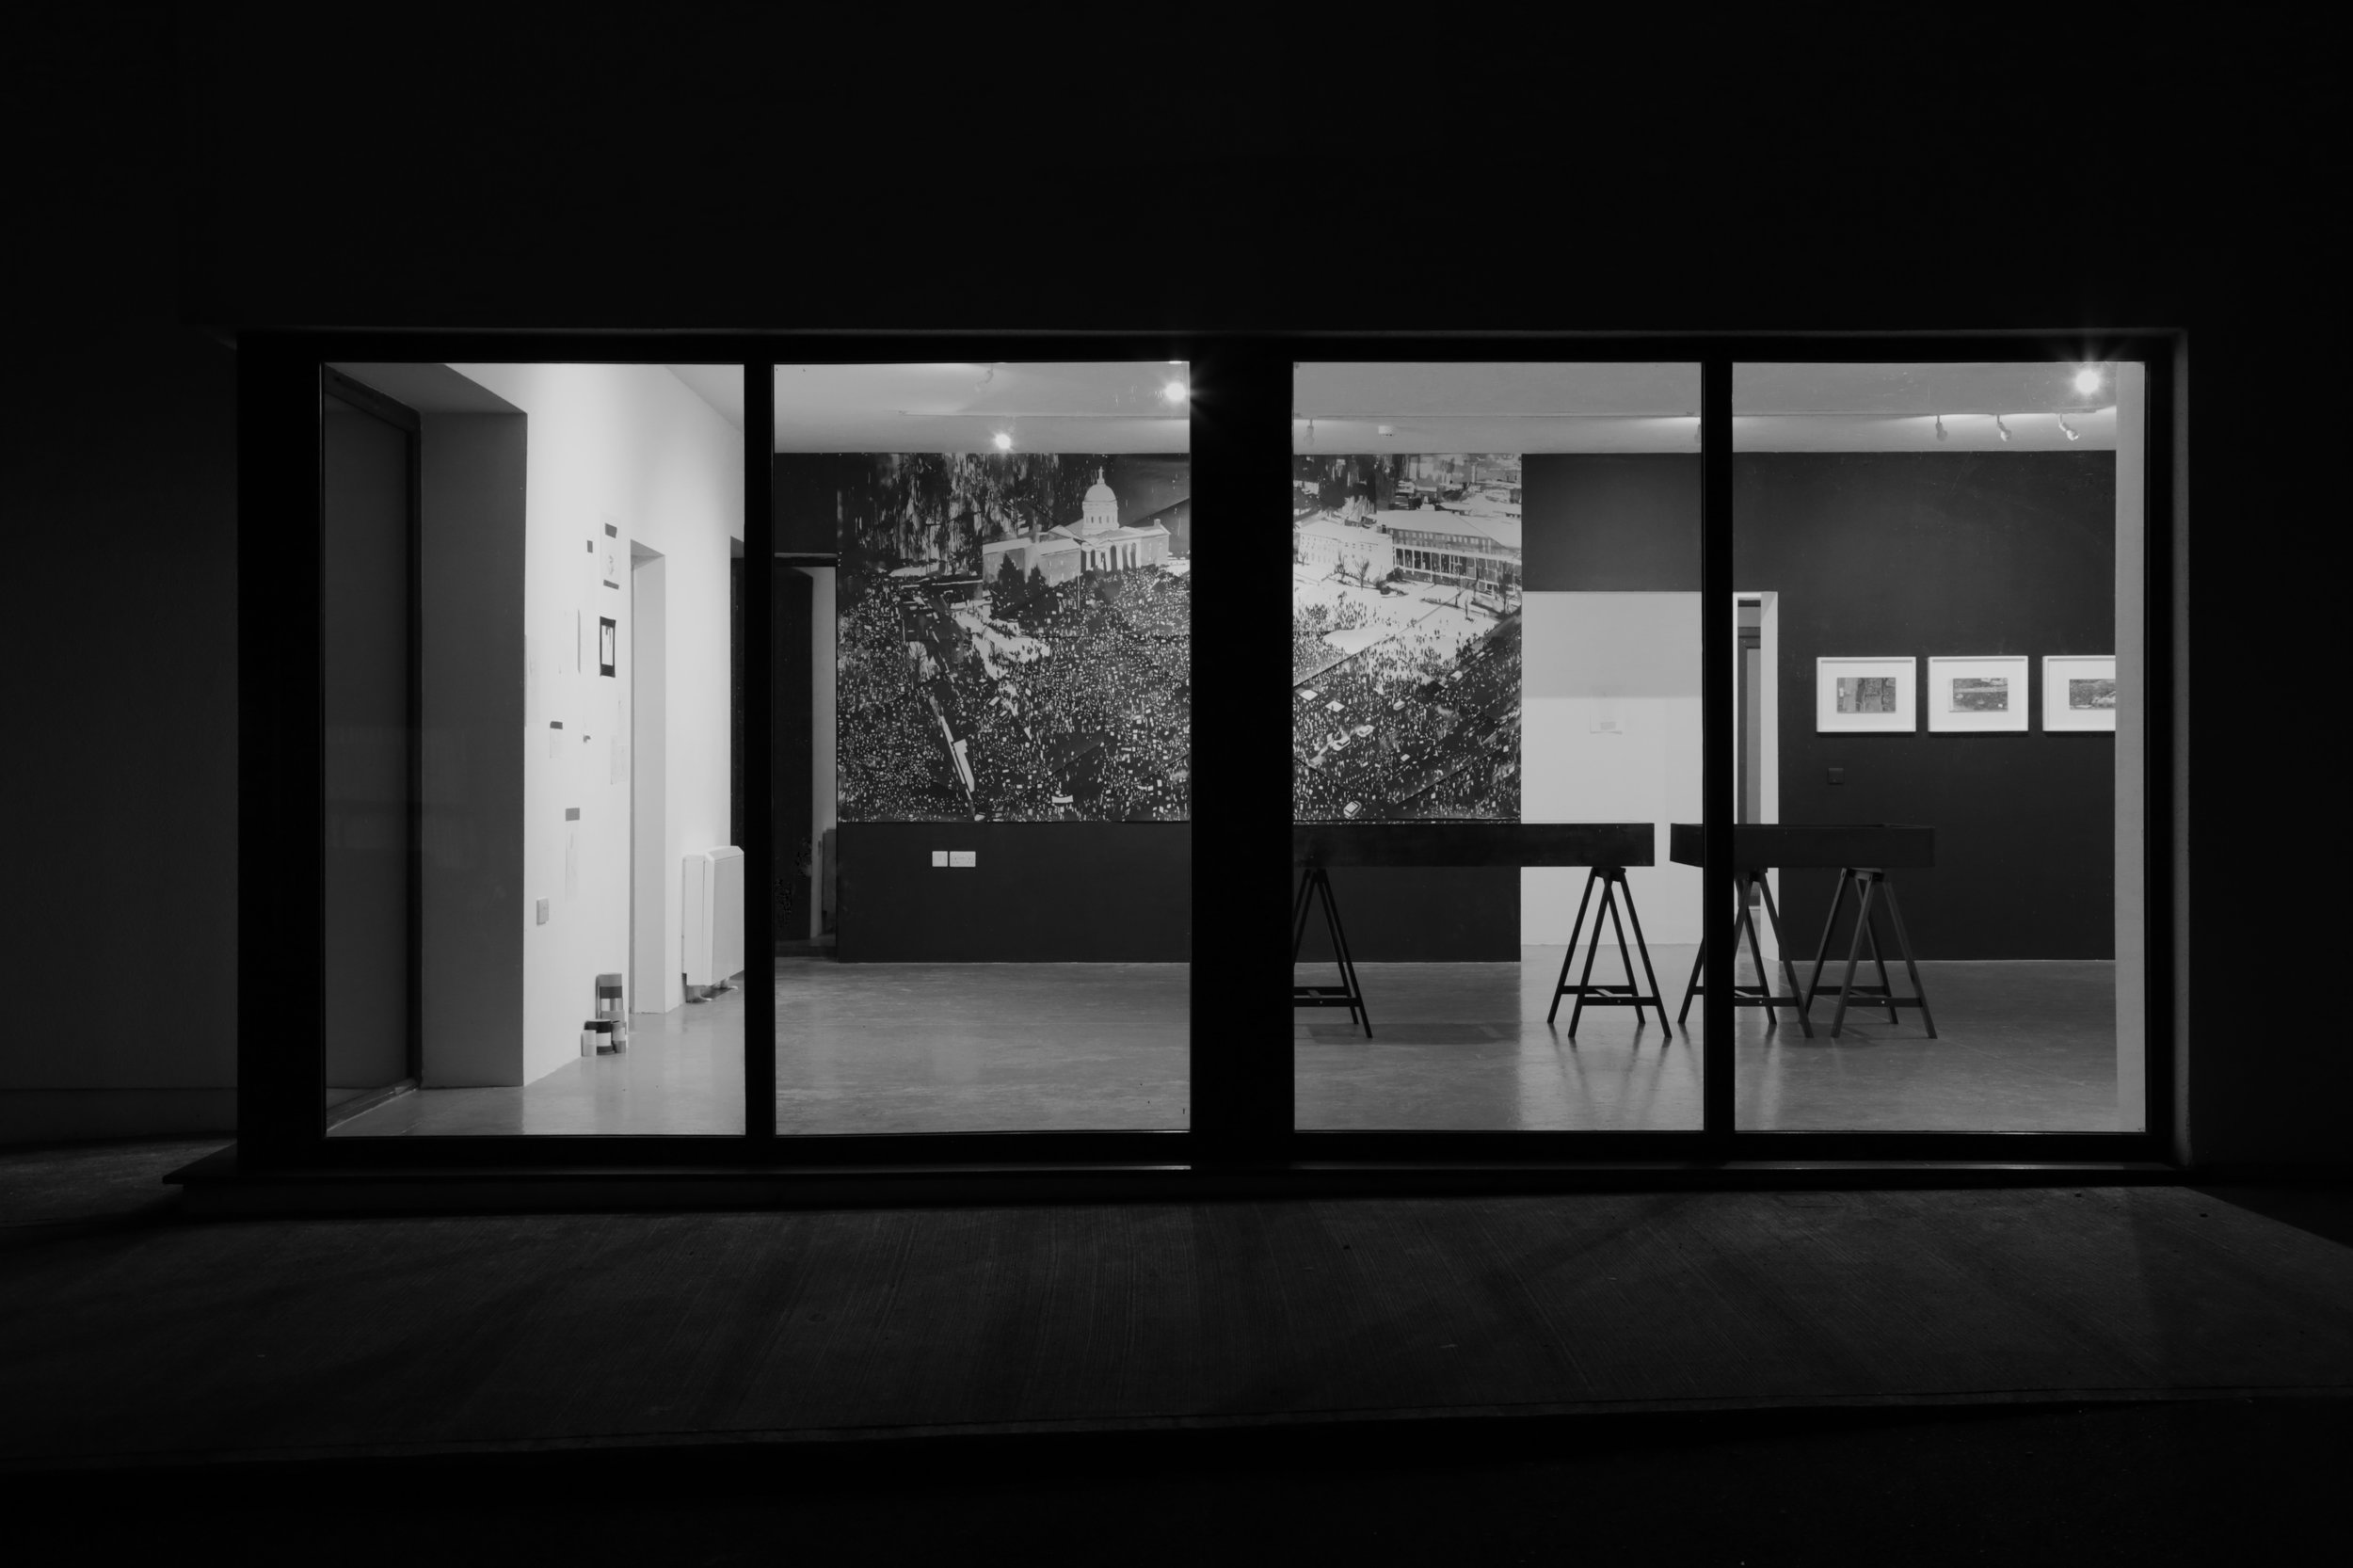 Exhibitions - Creativity craves a space for human engagement. Our exhibition space will fulfill that need through a framework of submission, curation and invitation processes that engage and support local and national artists in the engagment and display of their work.